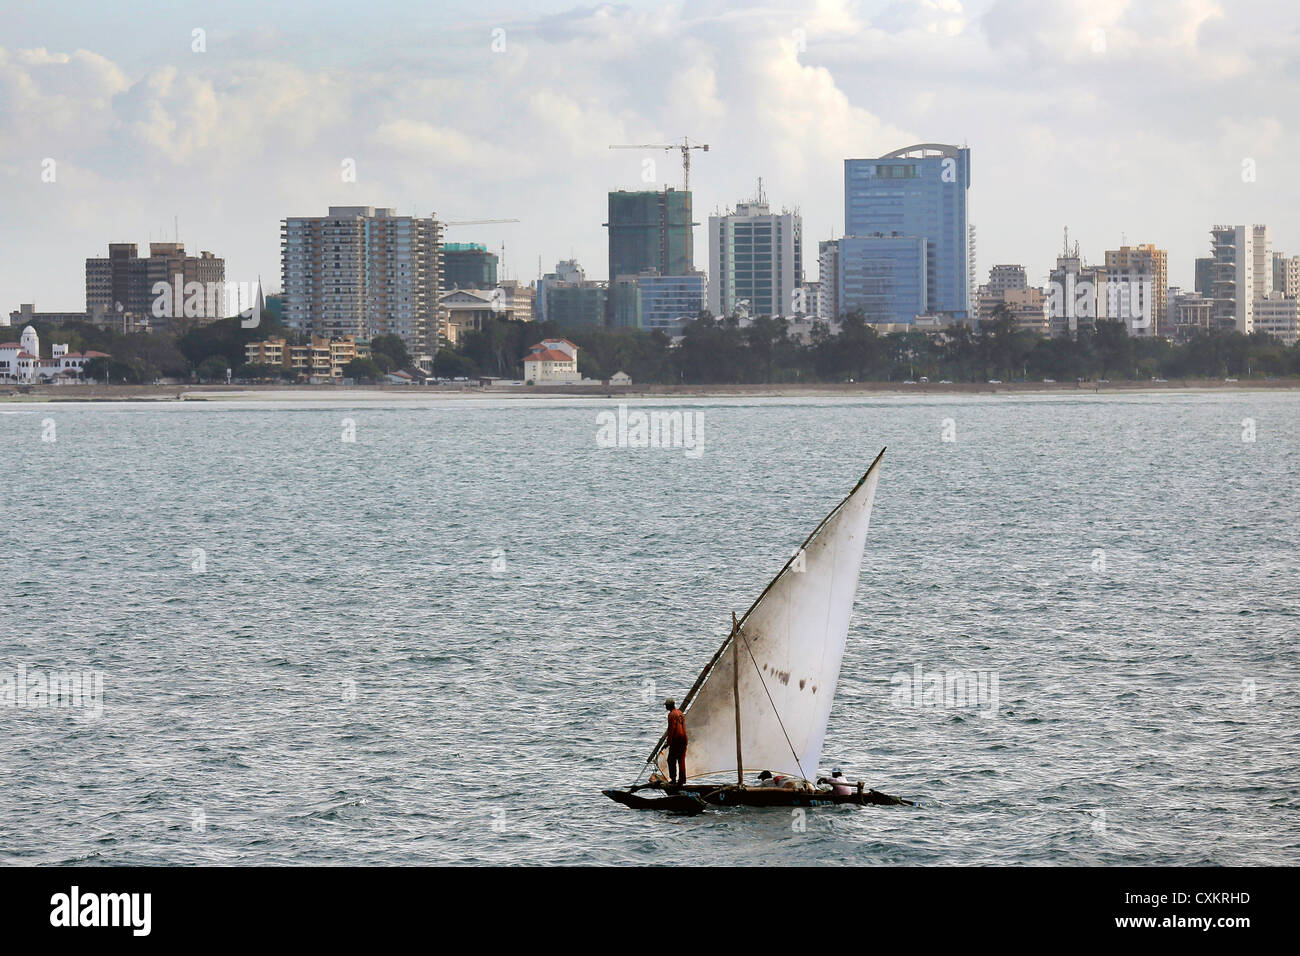 traditional Arab sailing boat (dhow) with Tanzanian capital Dar Es Salaam in the background - Stock Image